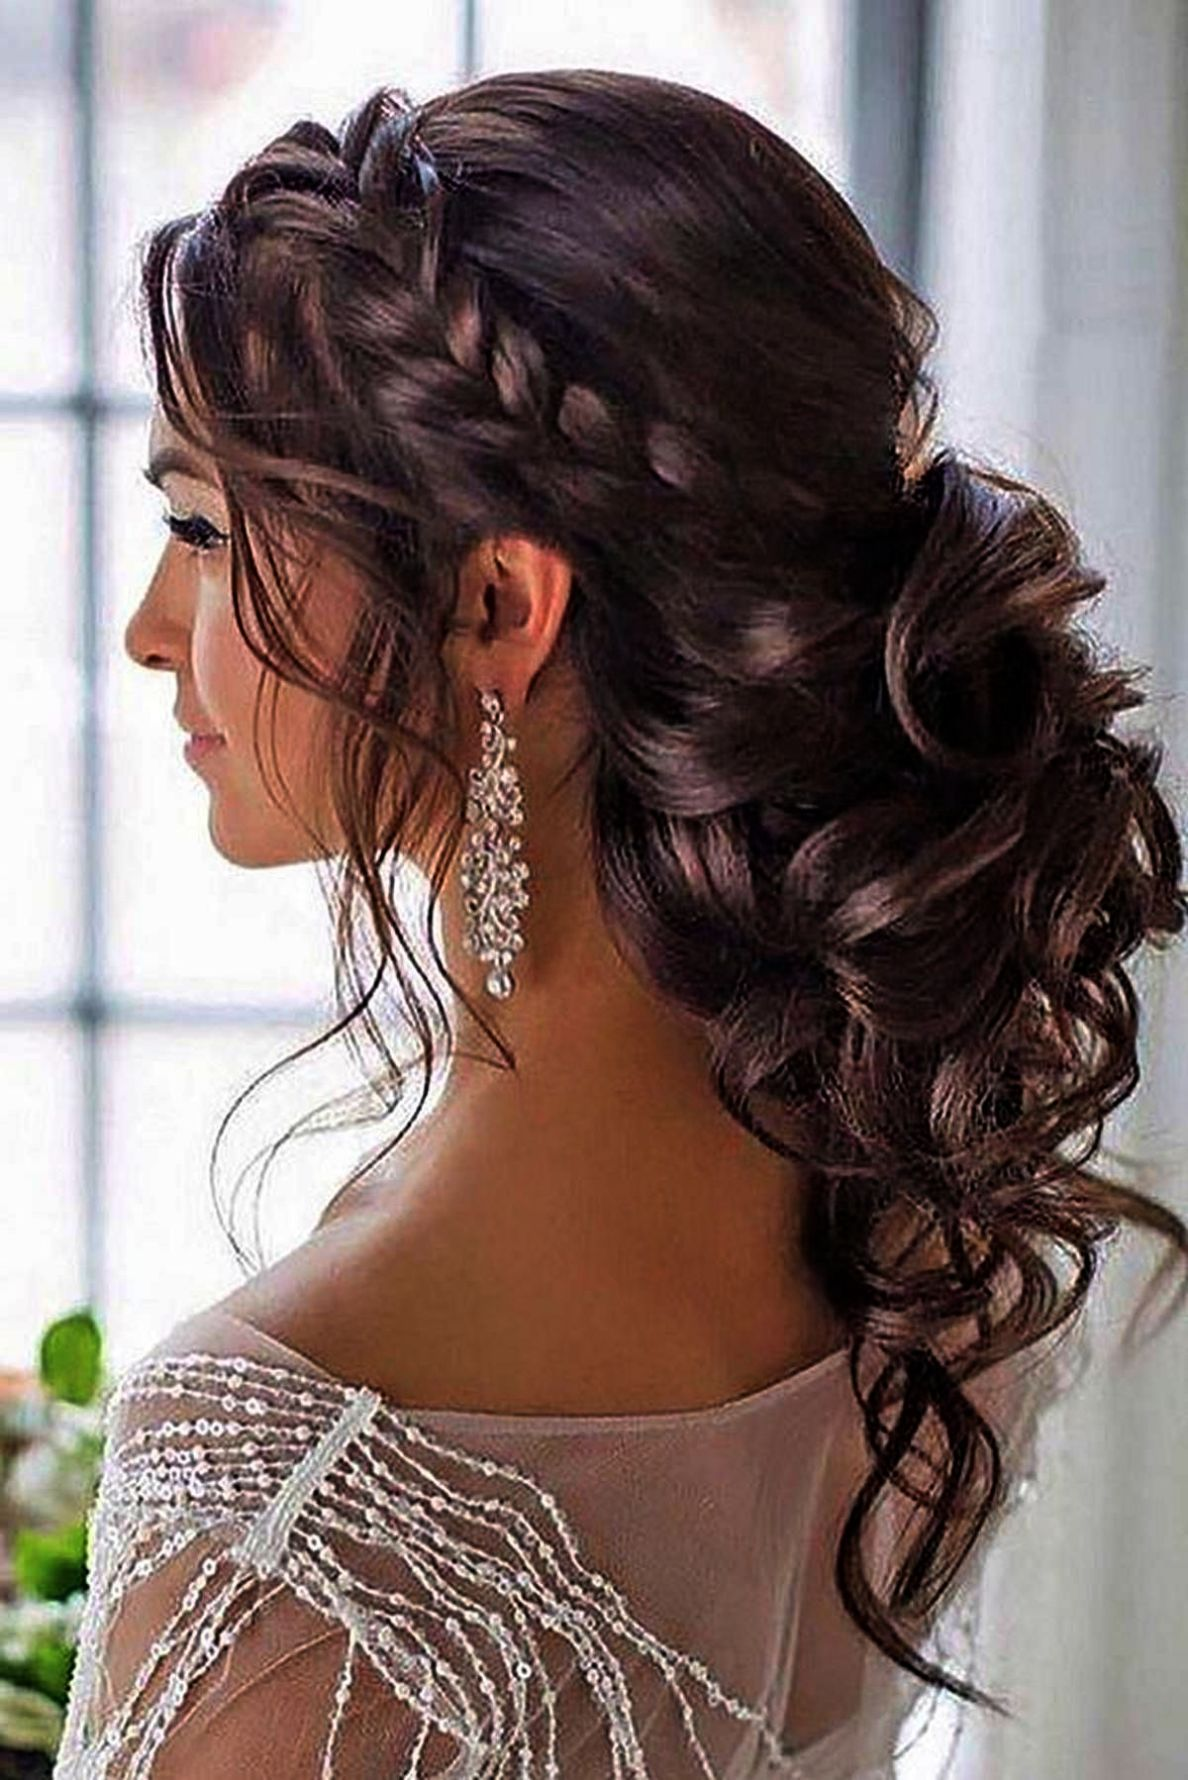 Simple Hairstyles For Wedding Party Step By Step Simple Wedding Hairstyles For Long Curly Hair Diyhairstyles Hair Styles Long Hair Styles Quince Hairstyles